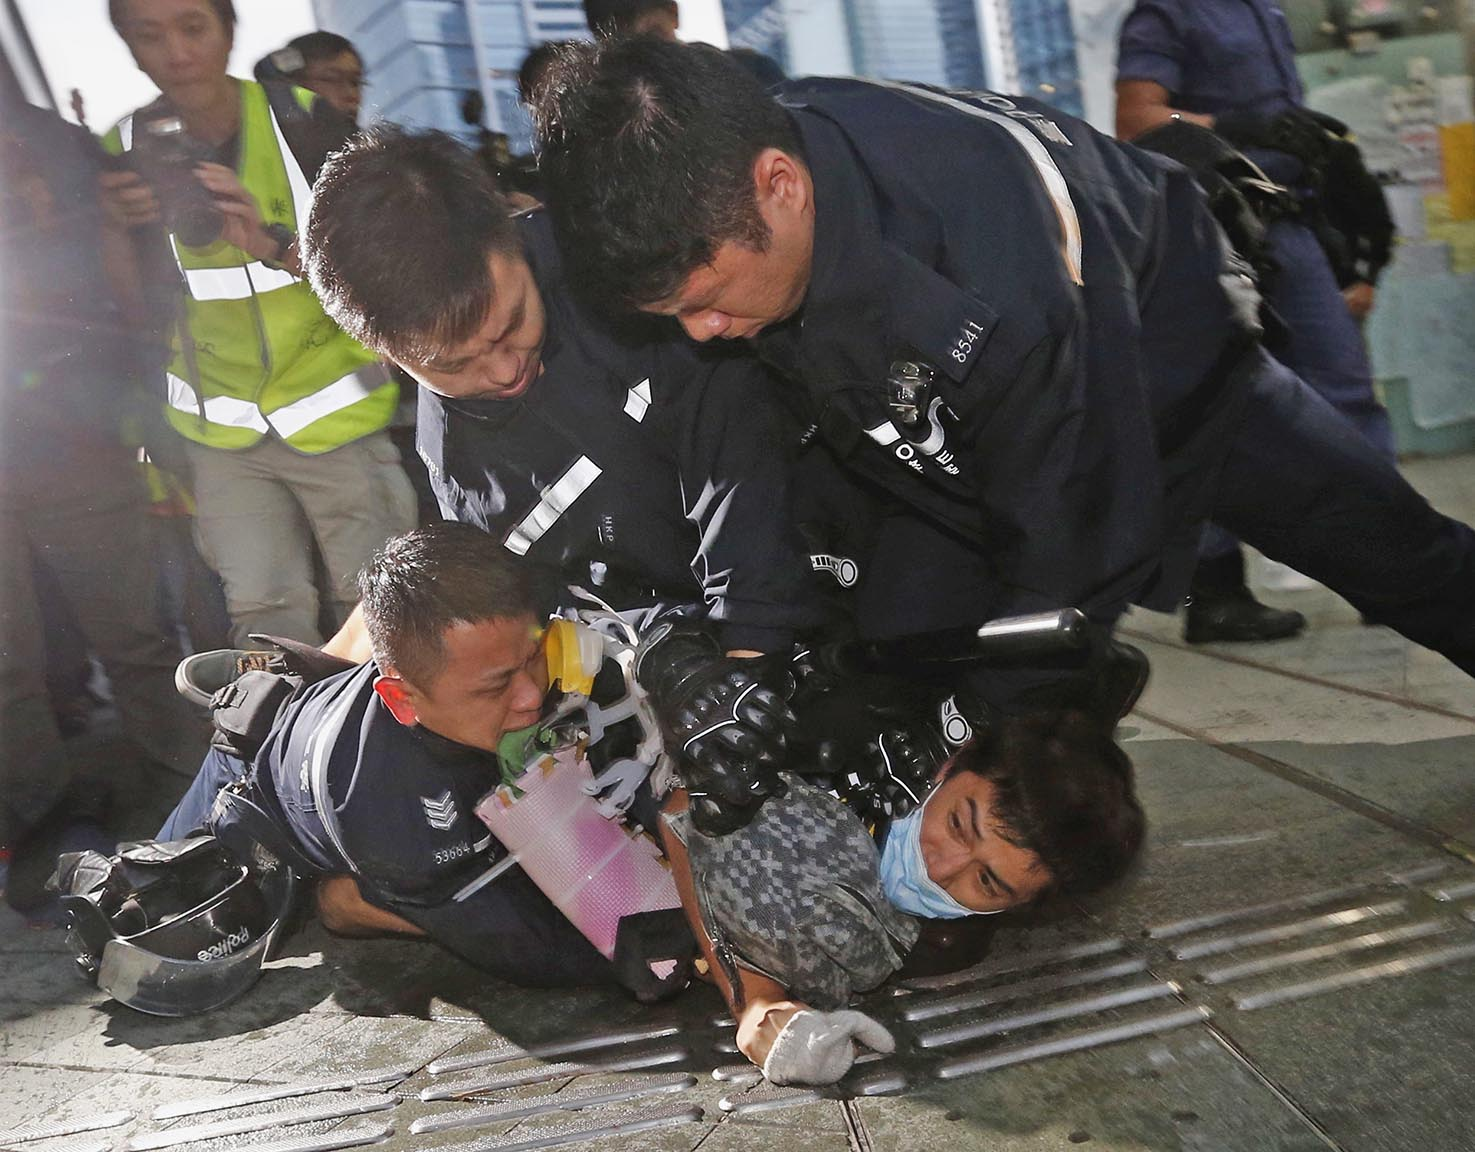 Pro-democracy protester and a policeman fall to the ground as two other policemen detain protester during clashes outside the government headquarters in Hong Kong